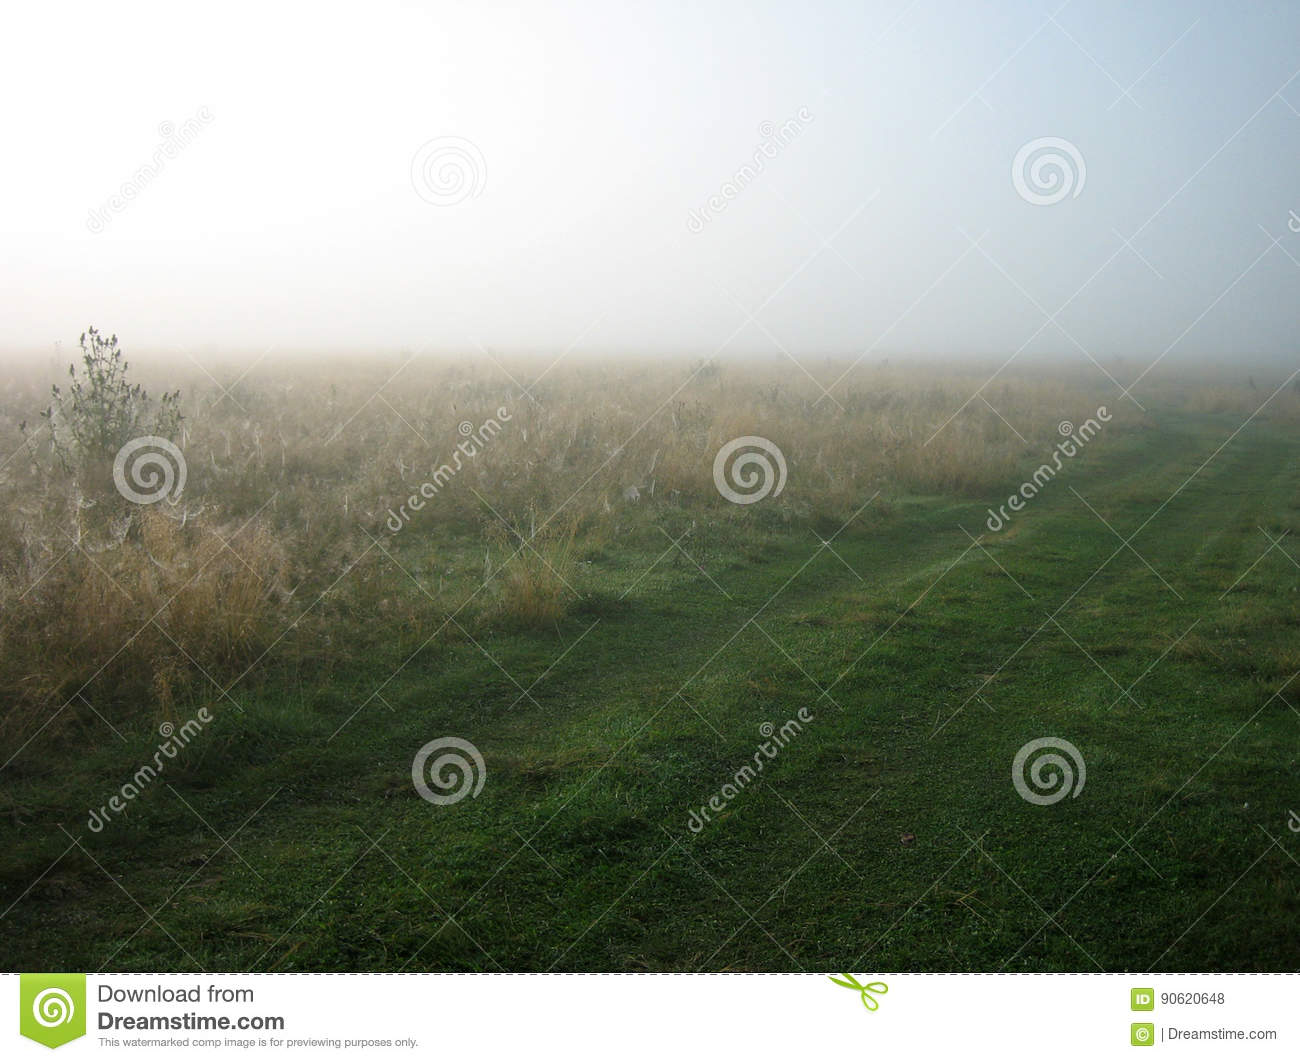 Download Background With Fog On The Field In Morning And Road Horizontal View